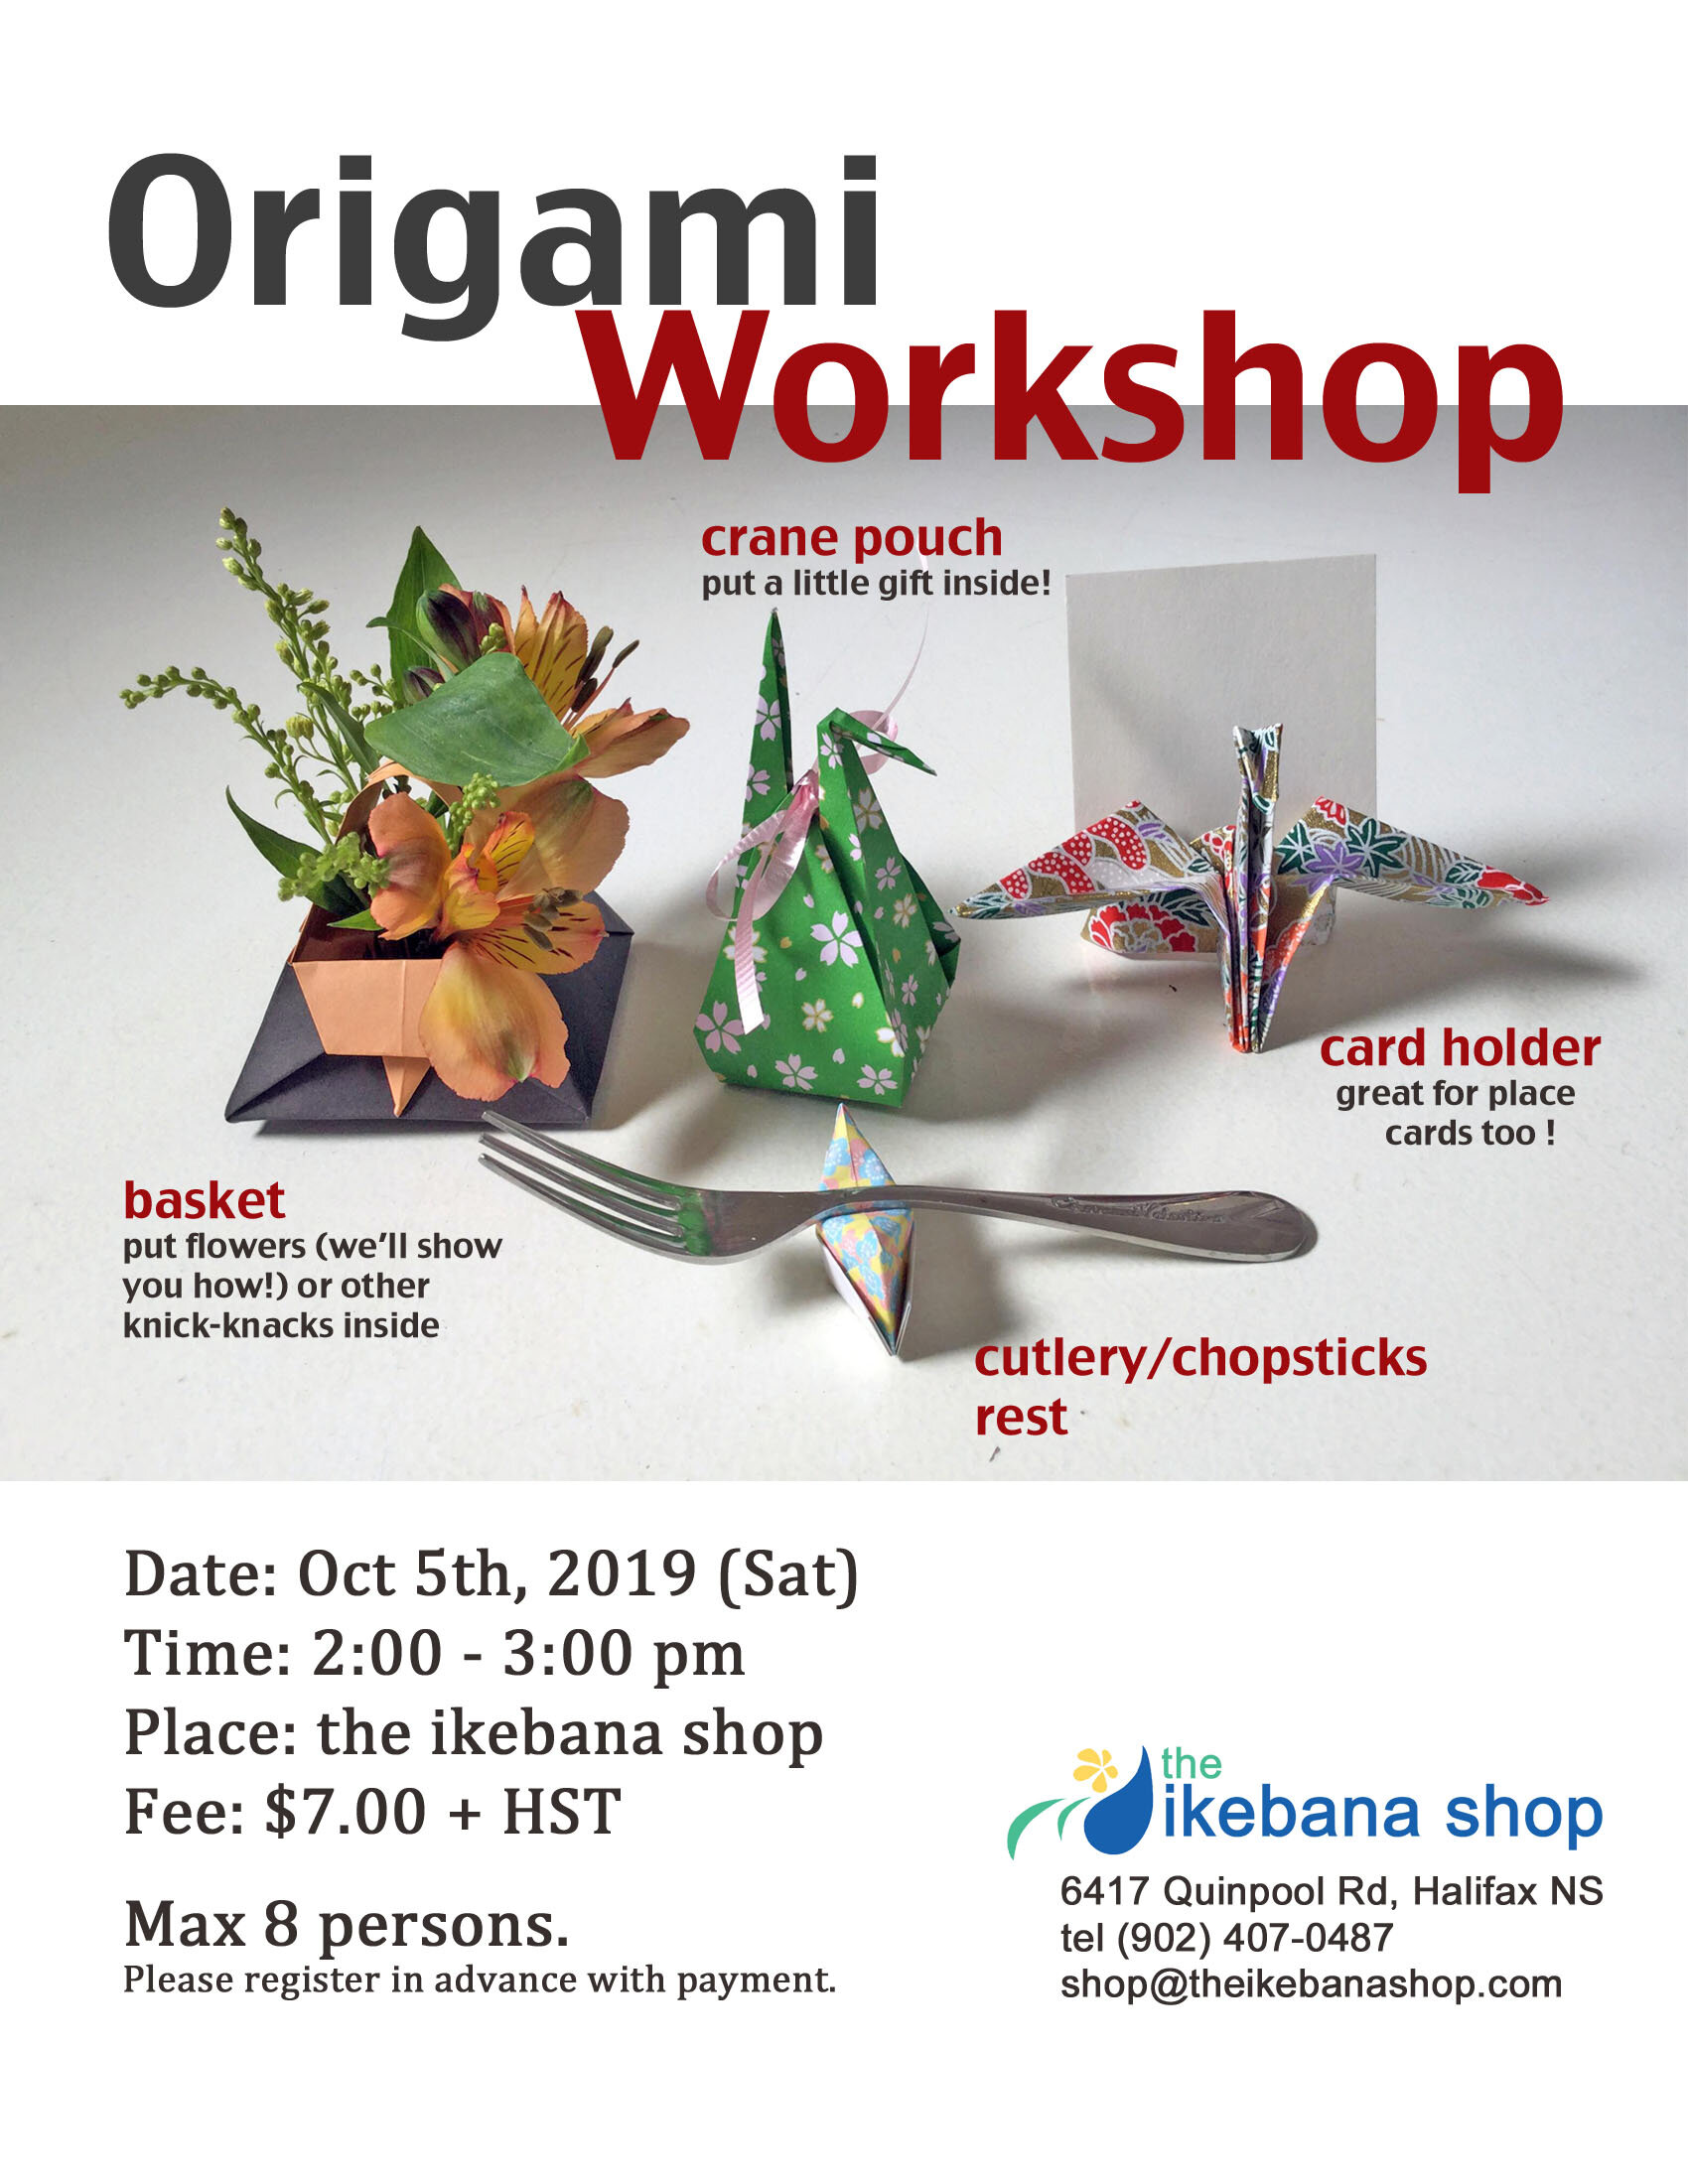 20191005 origami workshop.jpg